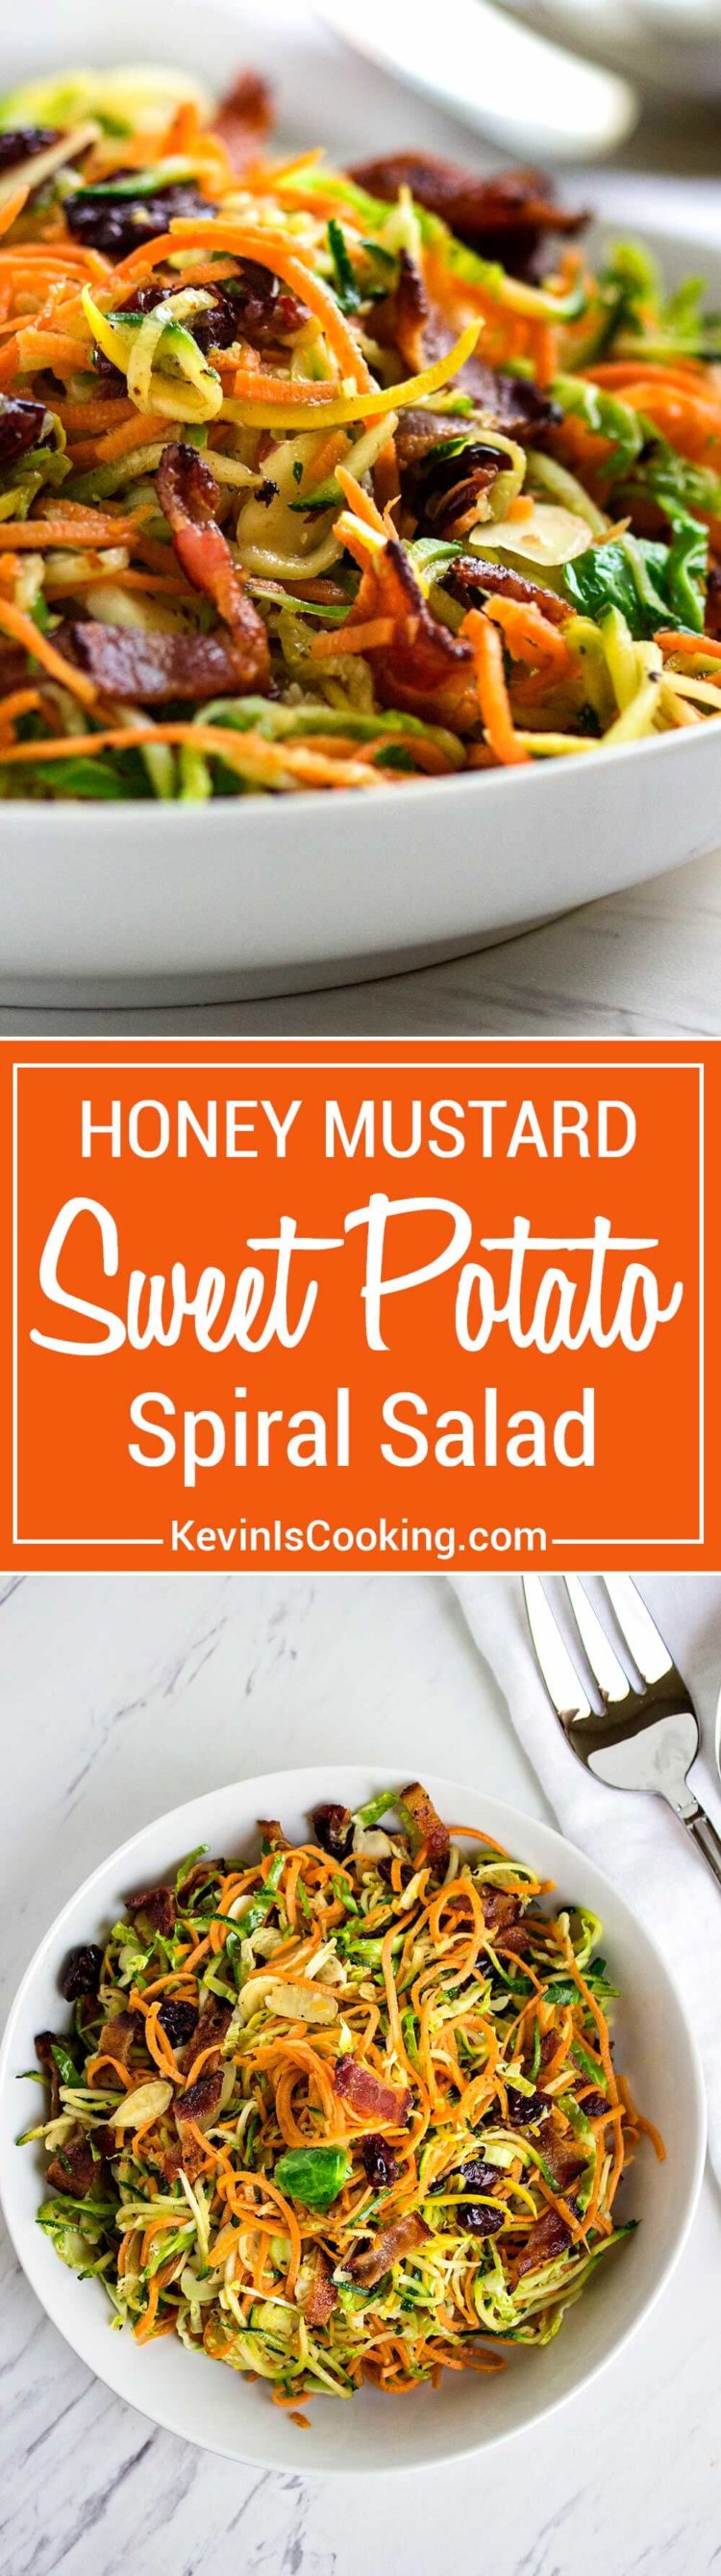 This Honey Mustard Sweet Potato Salad is made with with spiralized sweet potatoes, zucchini and shaved brussels sprouts in a bacon honey mustard dressing.